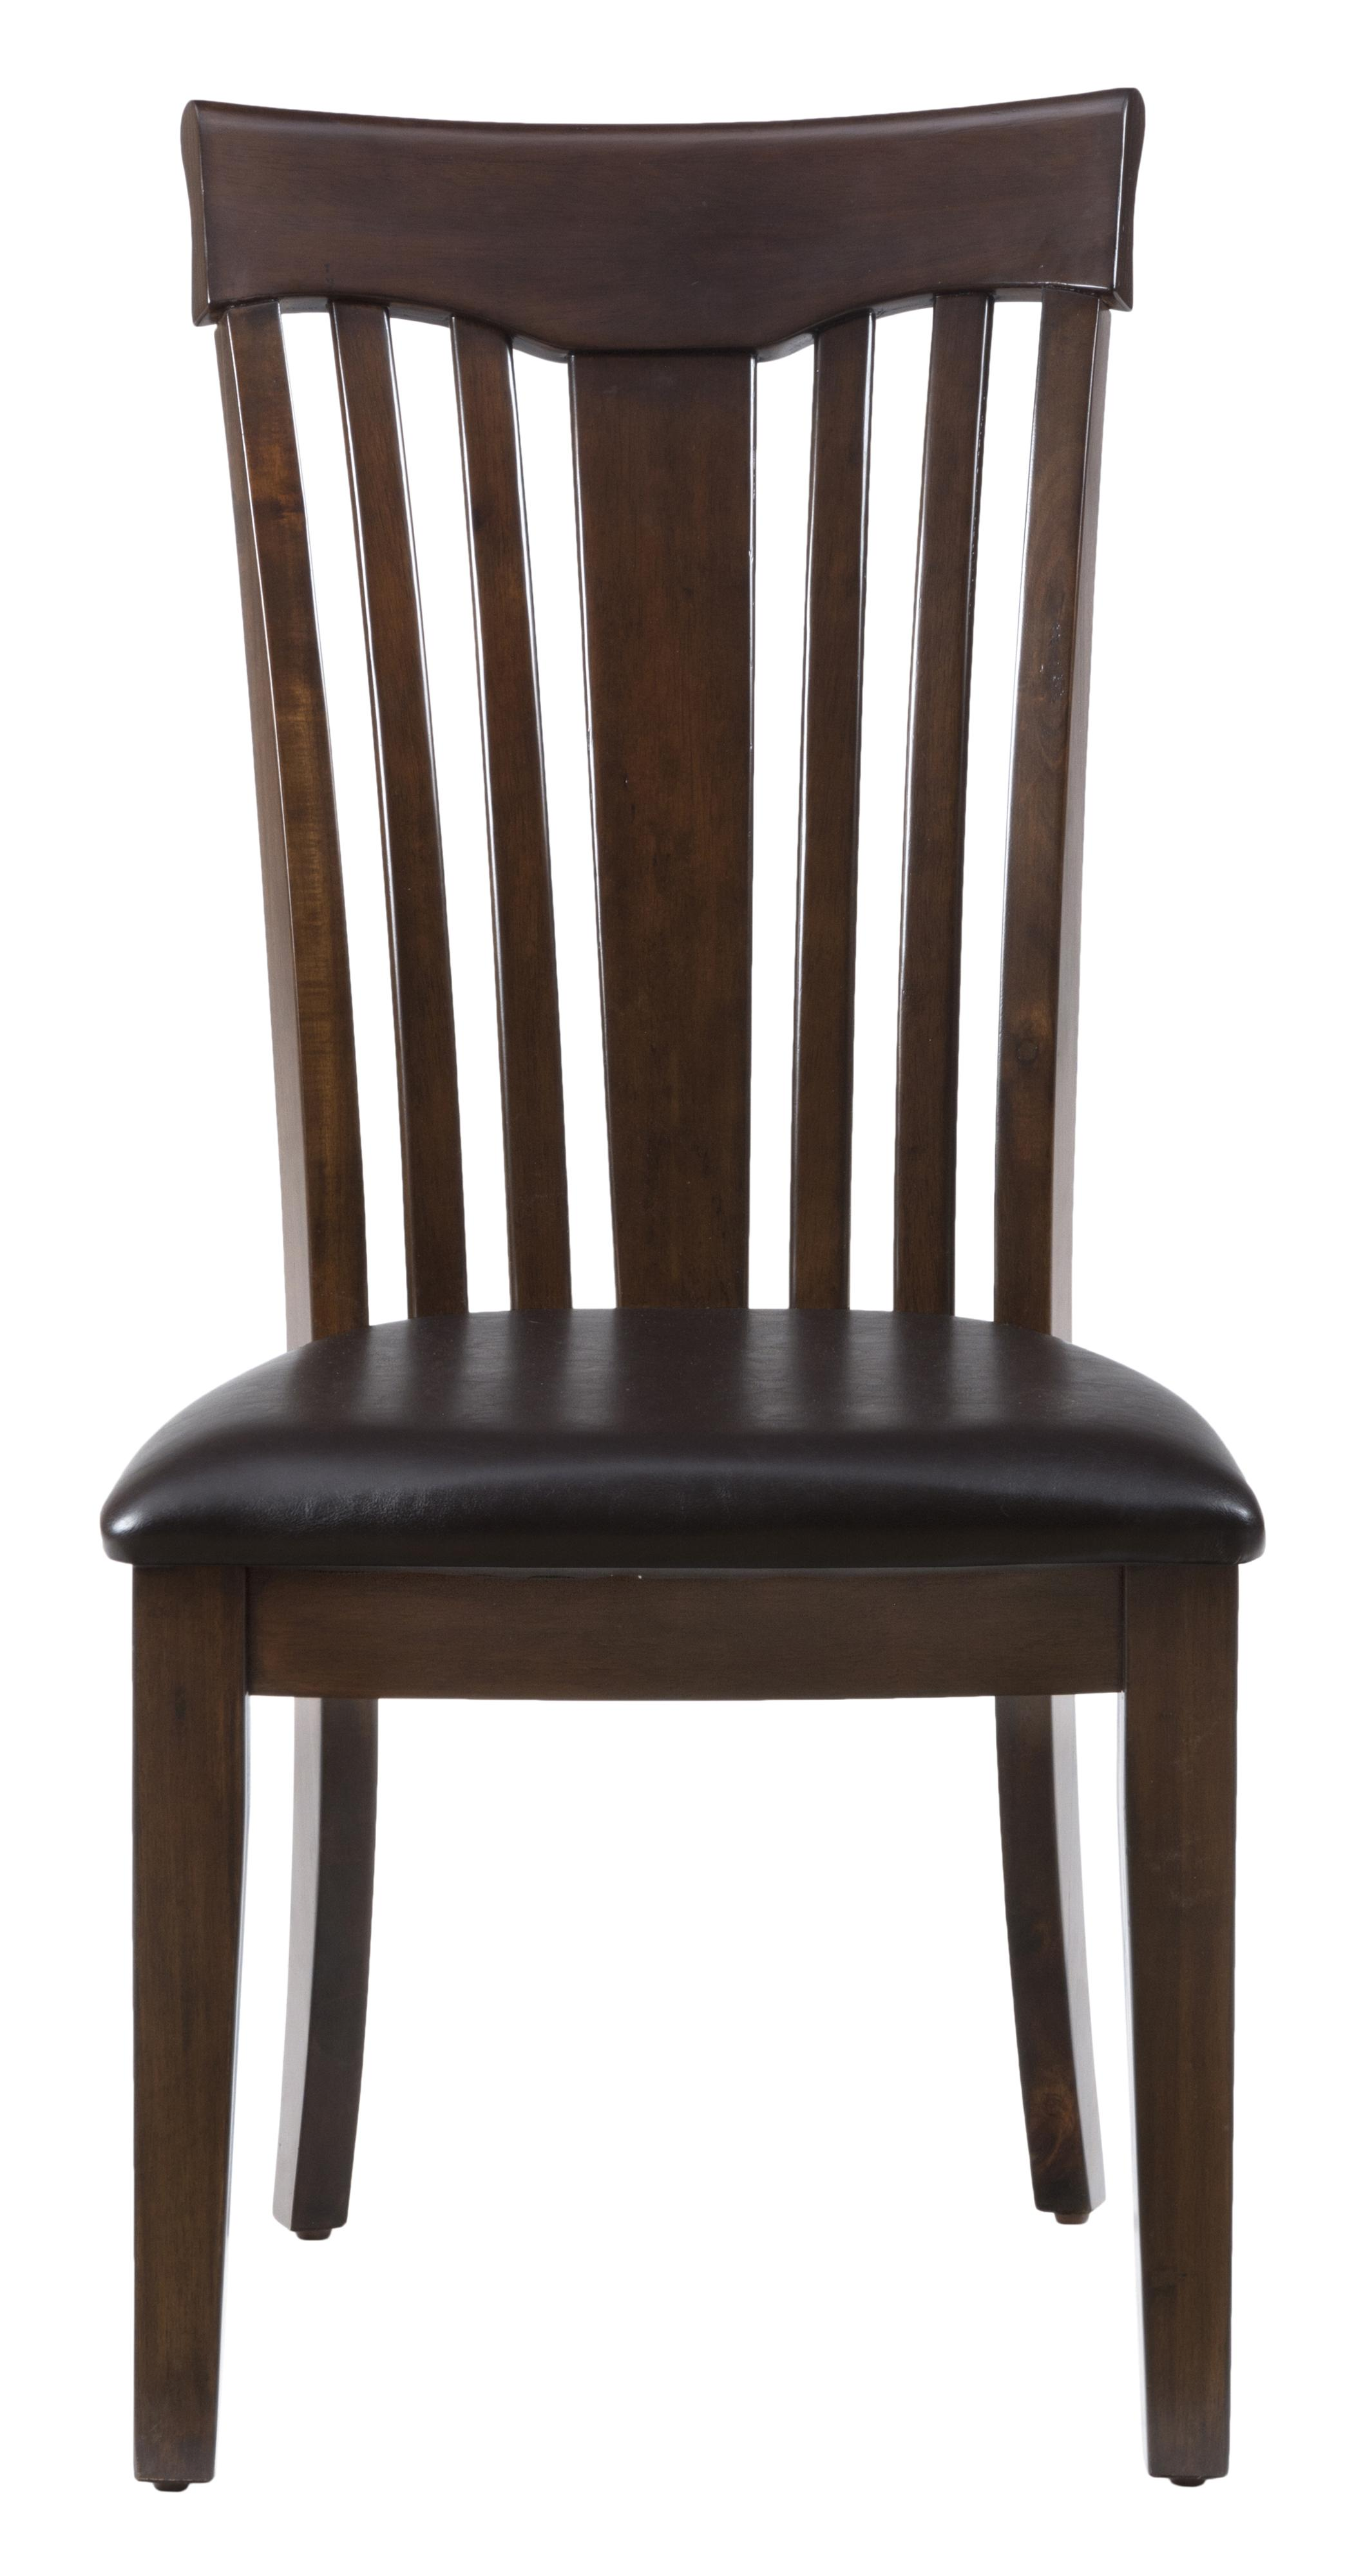 Slatted Back Chairs ~ Mila contoured slat back chair with padded cushion ruby